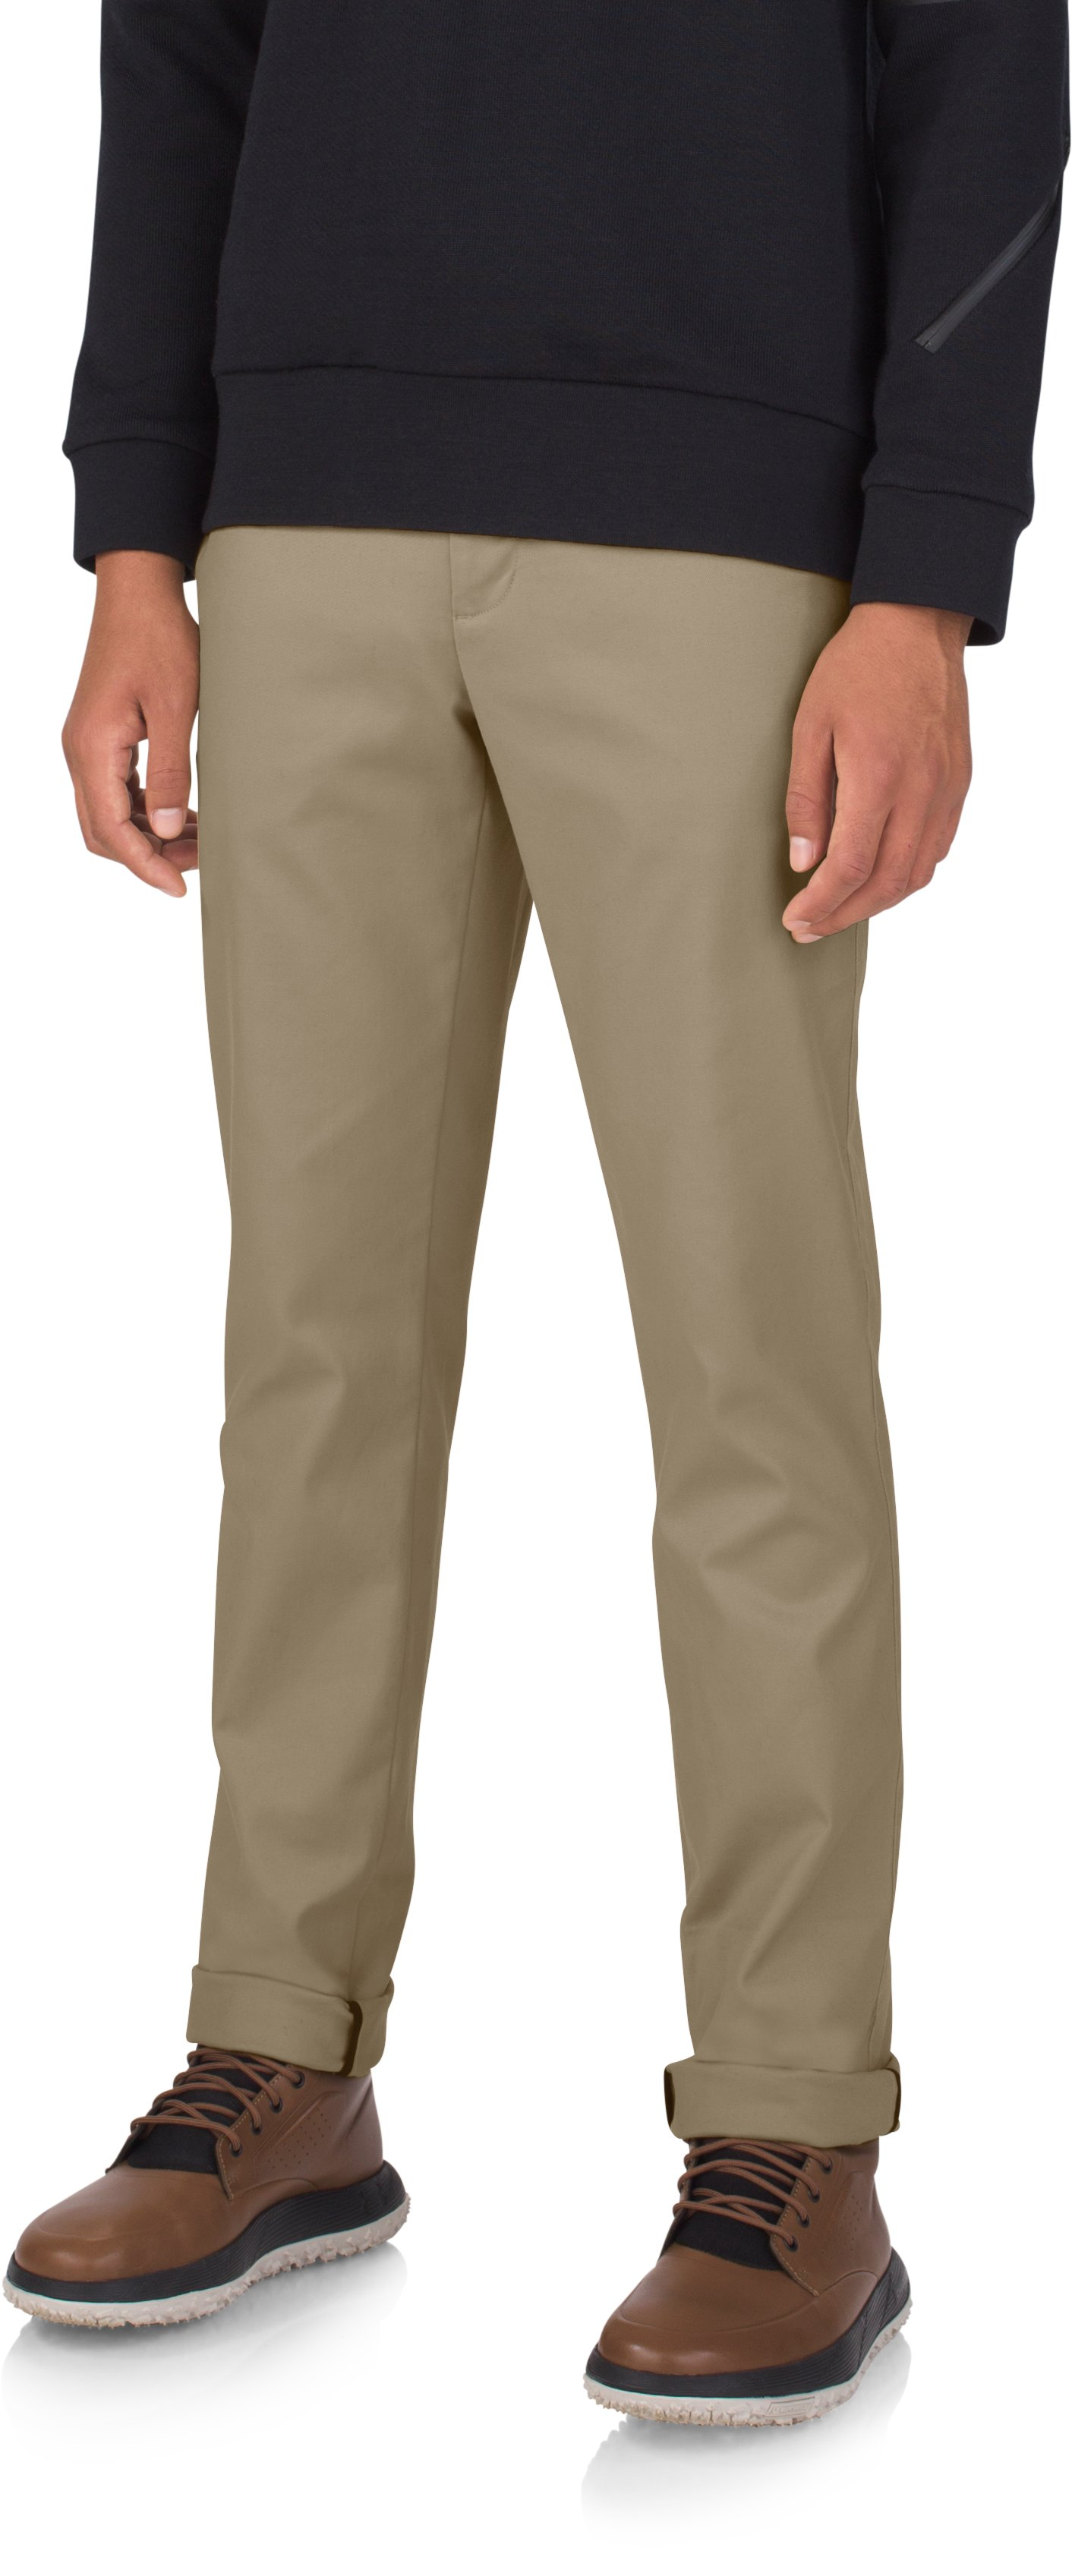 Men's Fieldhouse Rowing Chinos, Khaki